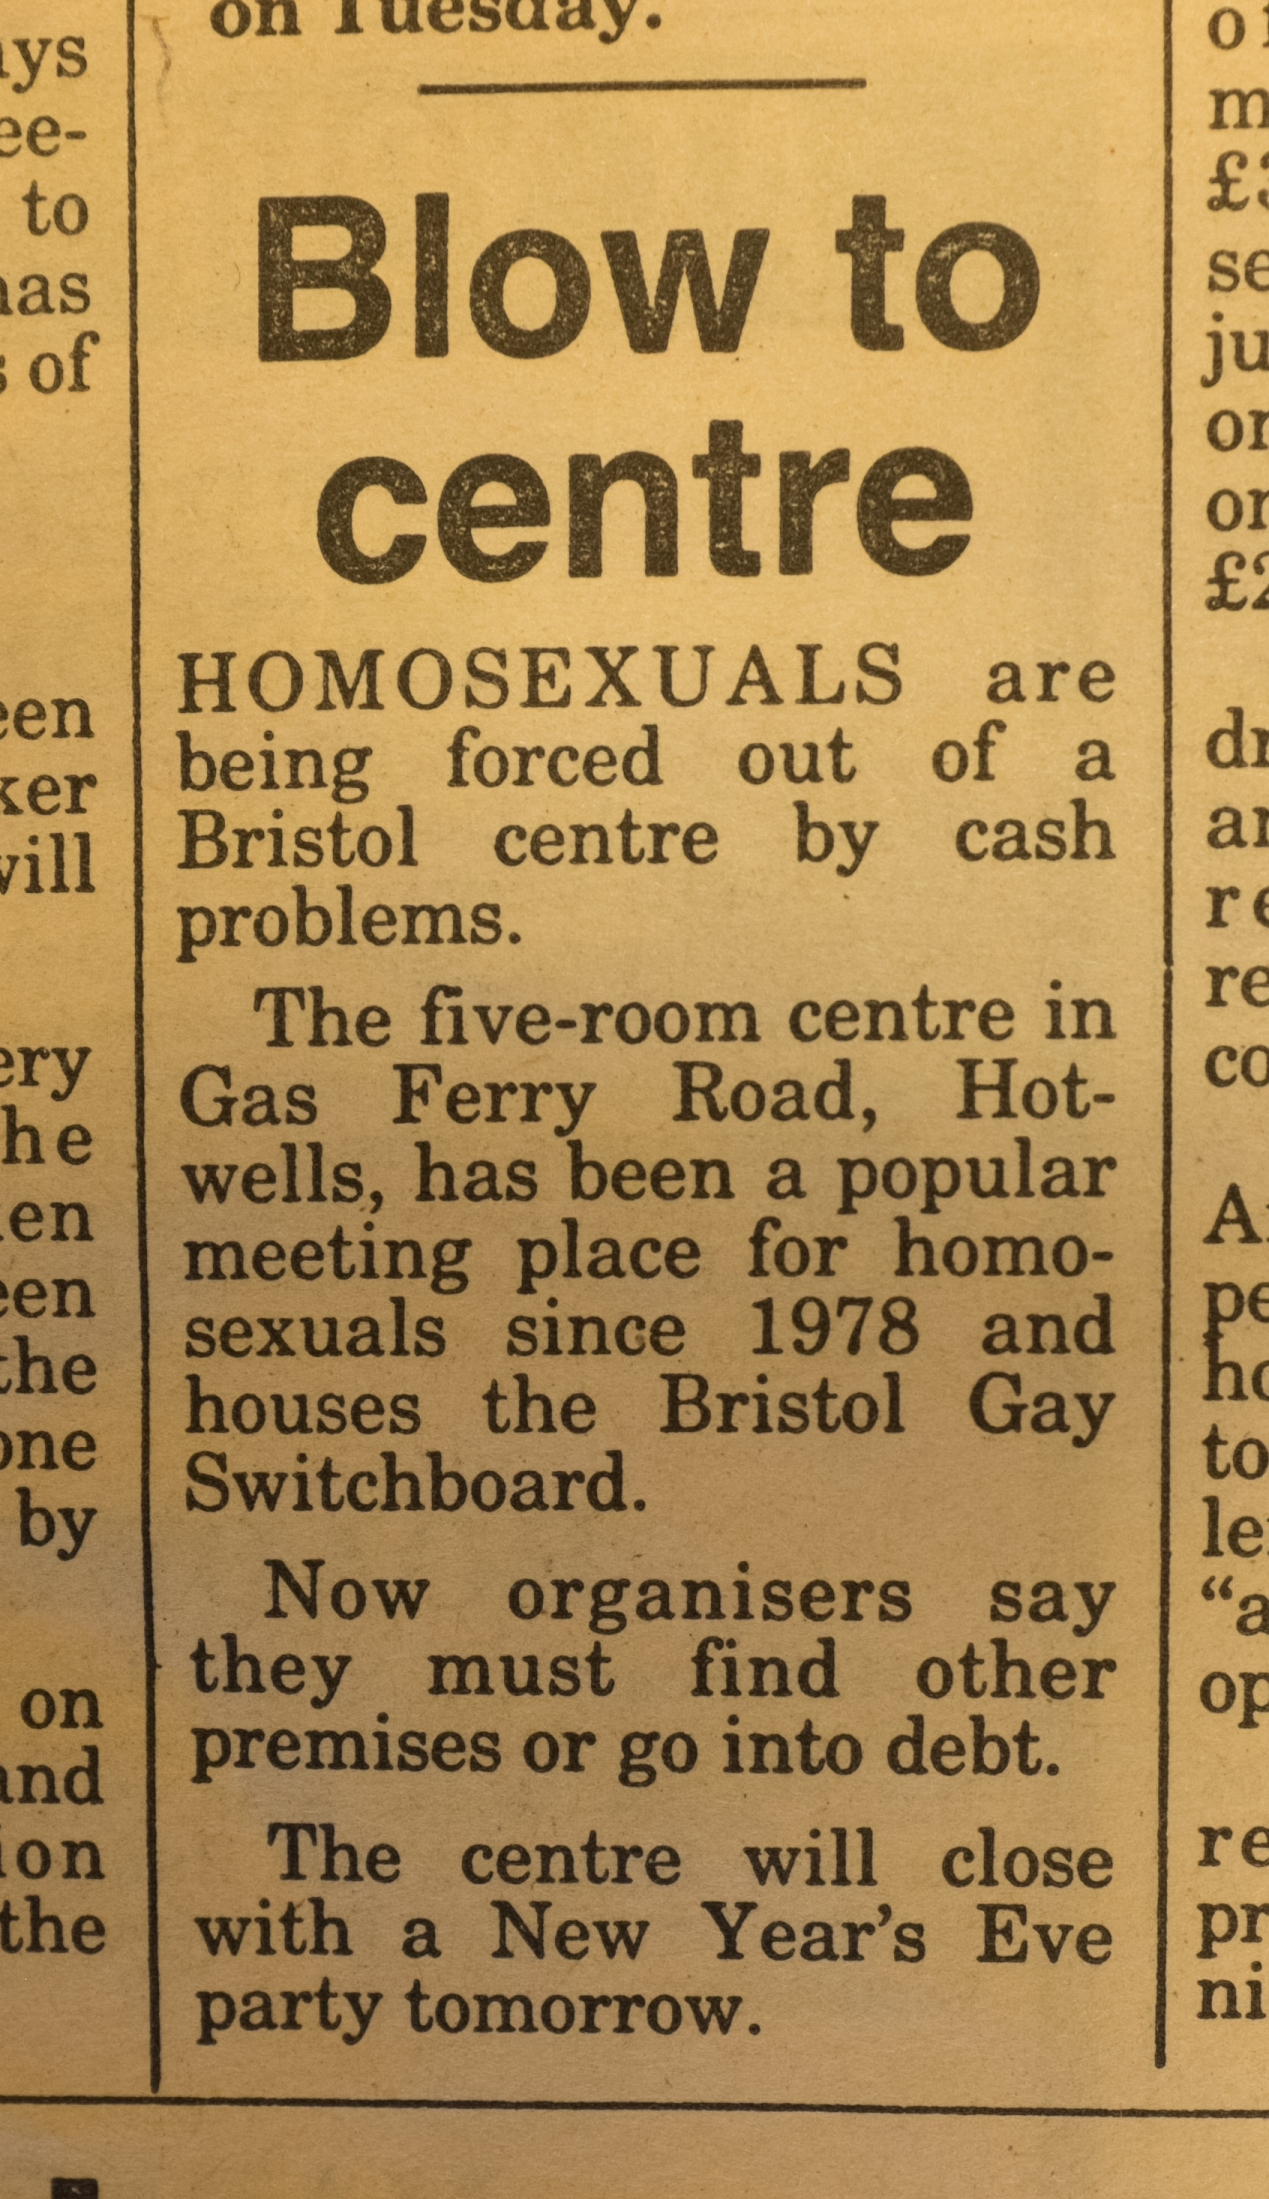 Newspaper clipping about closure of the Centre